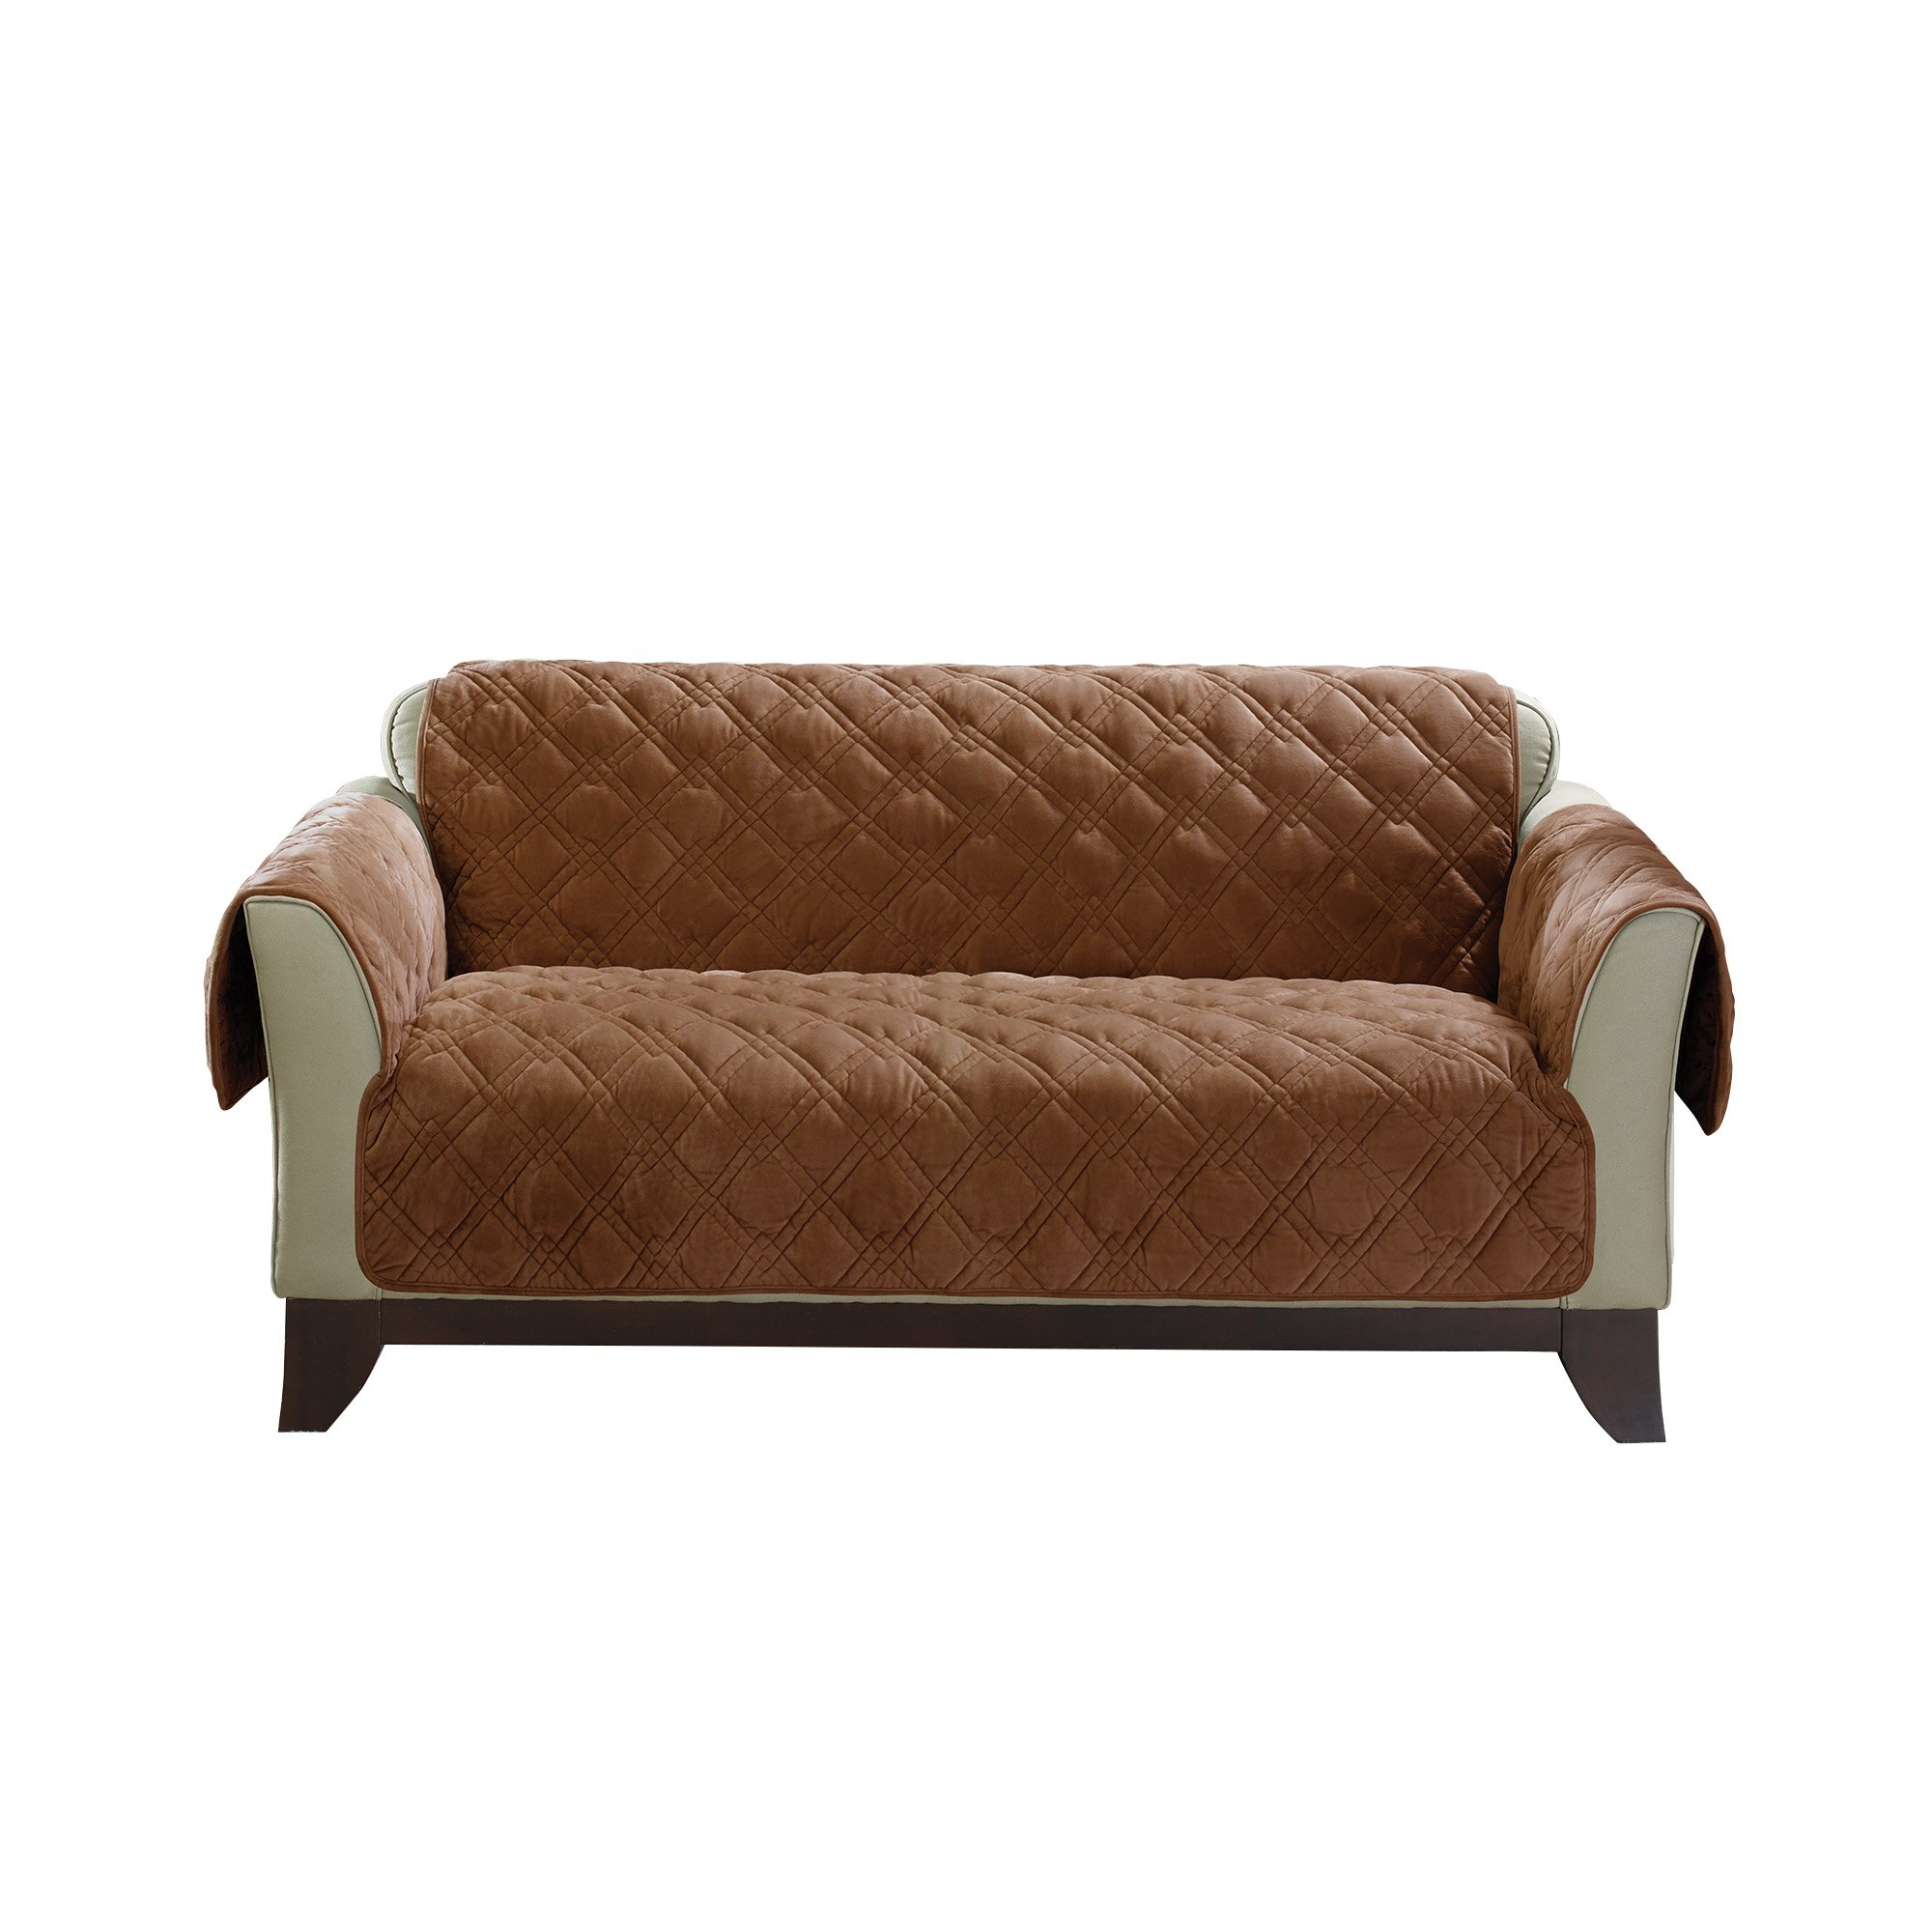 Sure Fit Plush Comfort Furniture Protector with Non Slip Backing, Loveseat, Brown